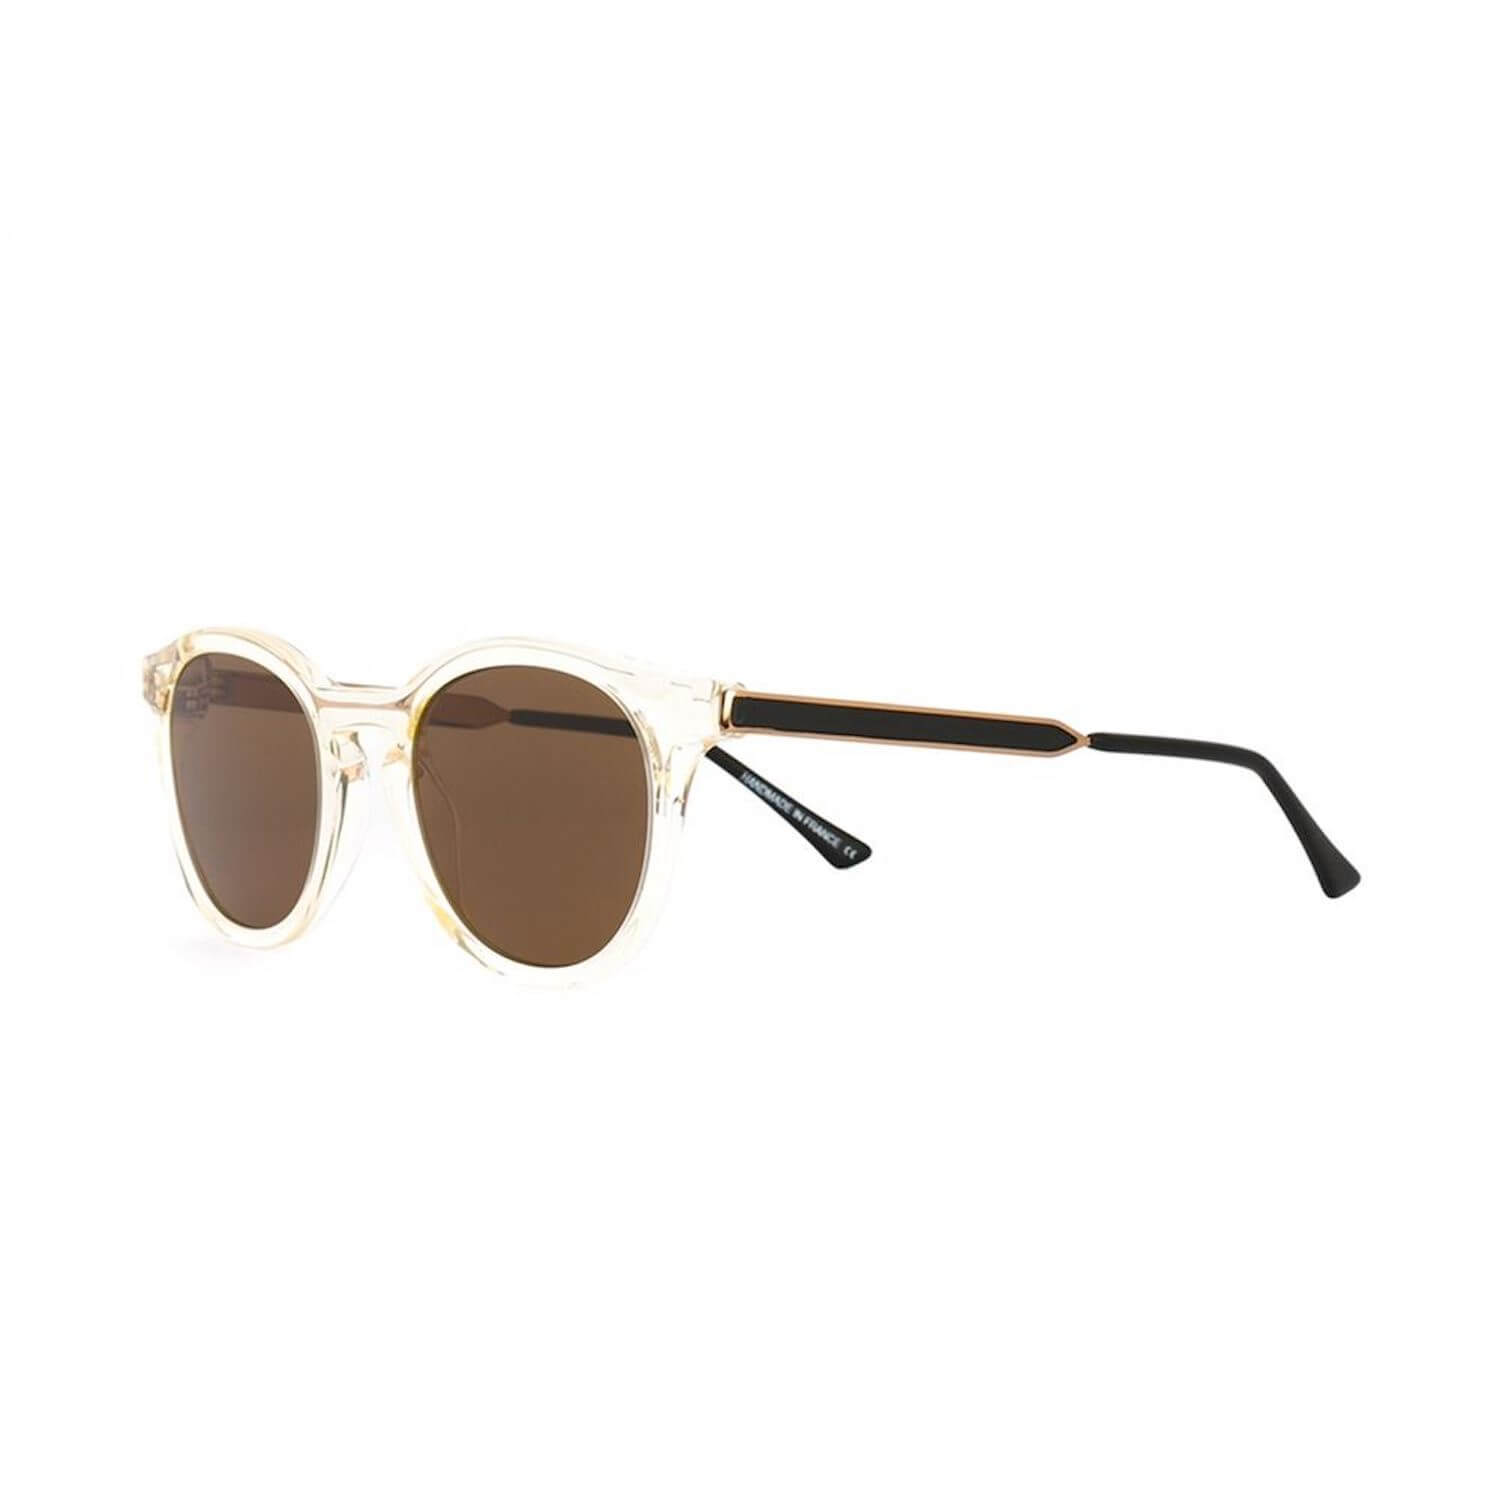 est living summer essentials farfetch thierry sunglasses